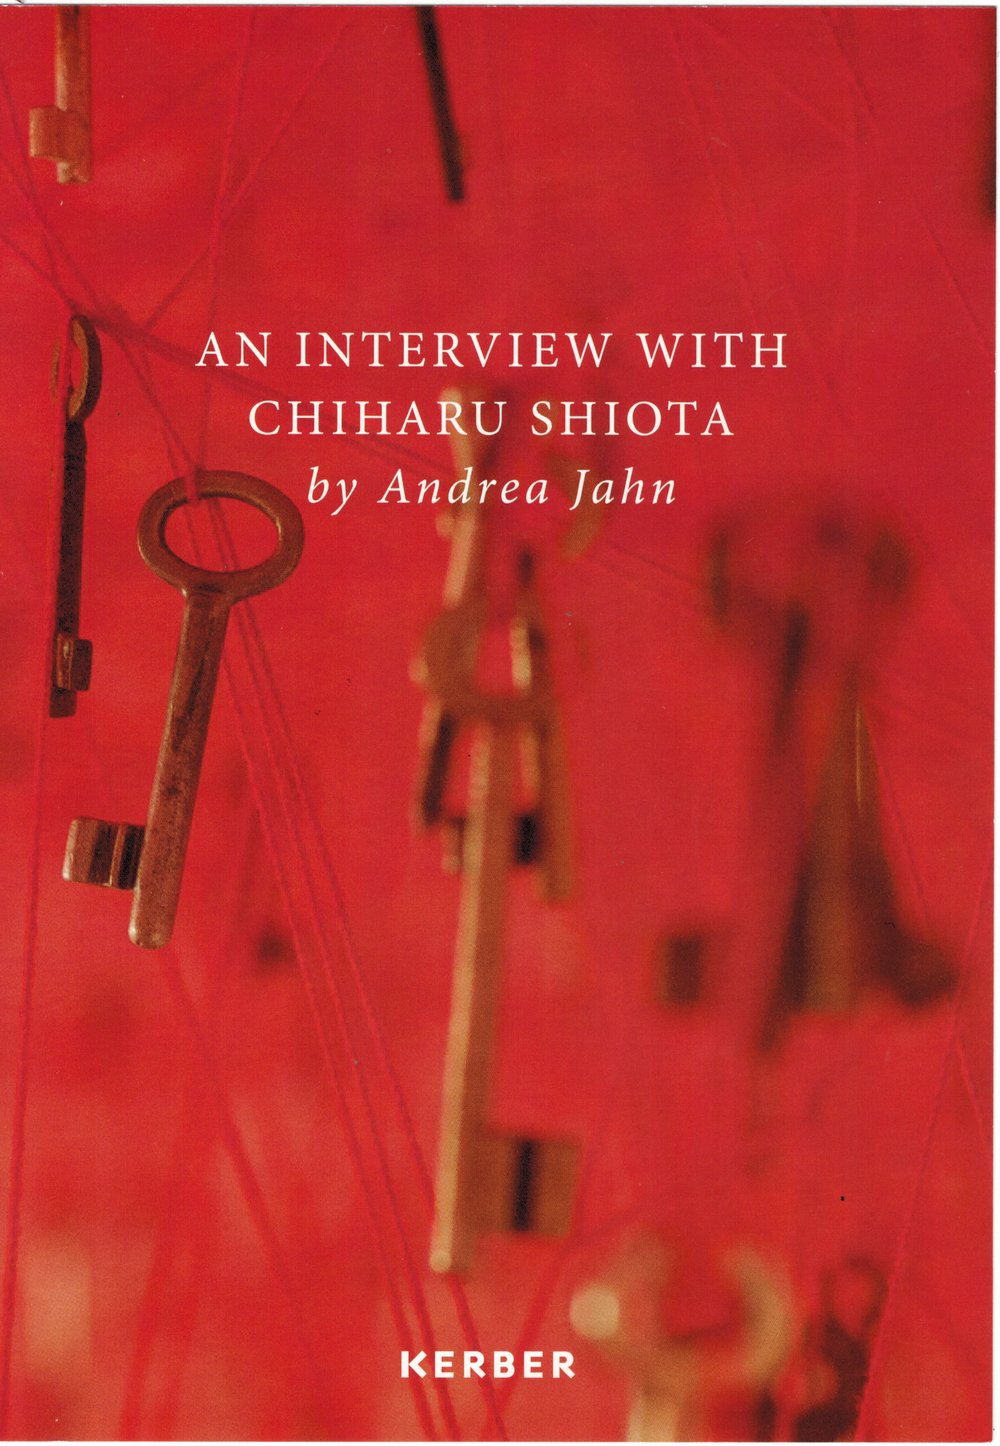 Interview_book_cover.jpeg